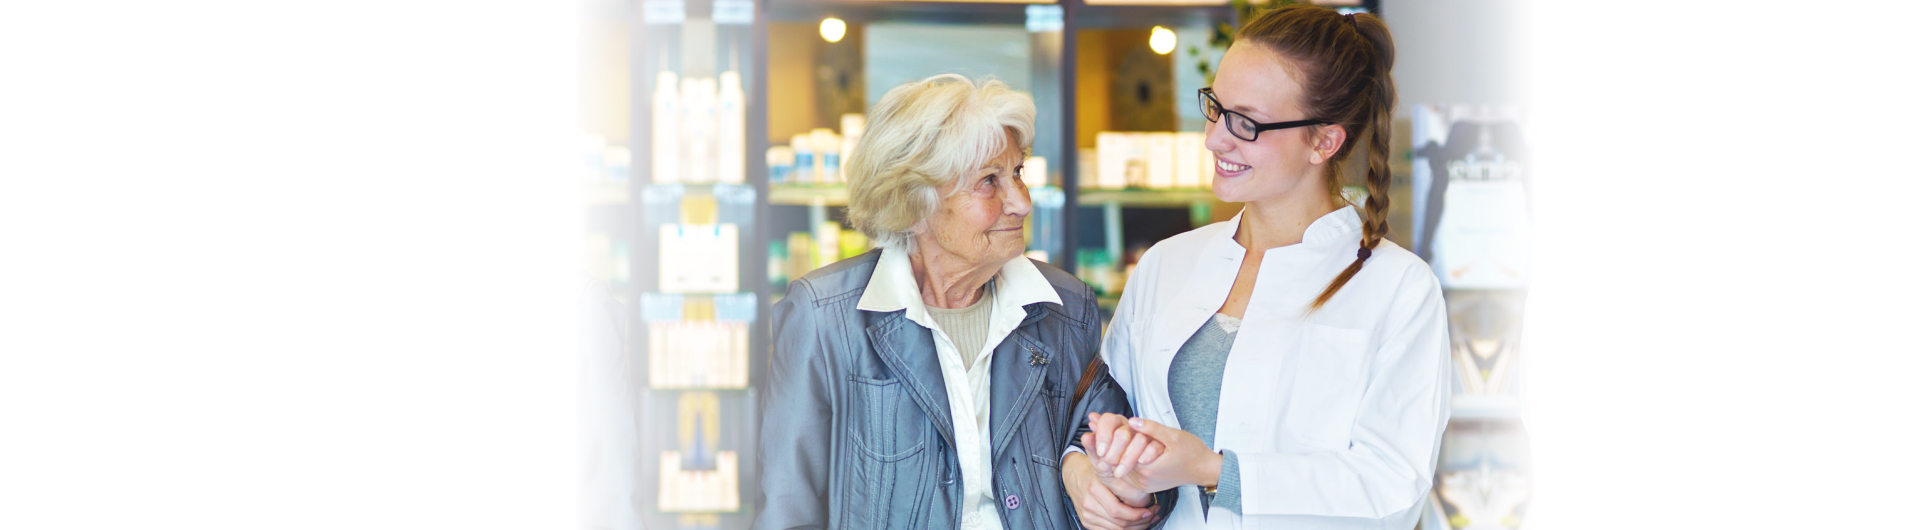 pharmacist assisting old woman